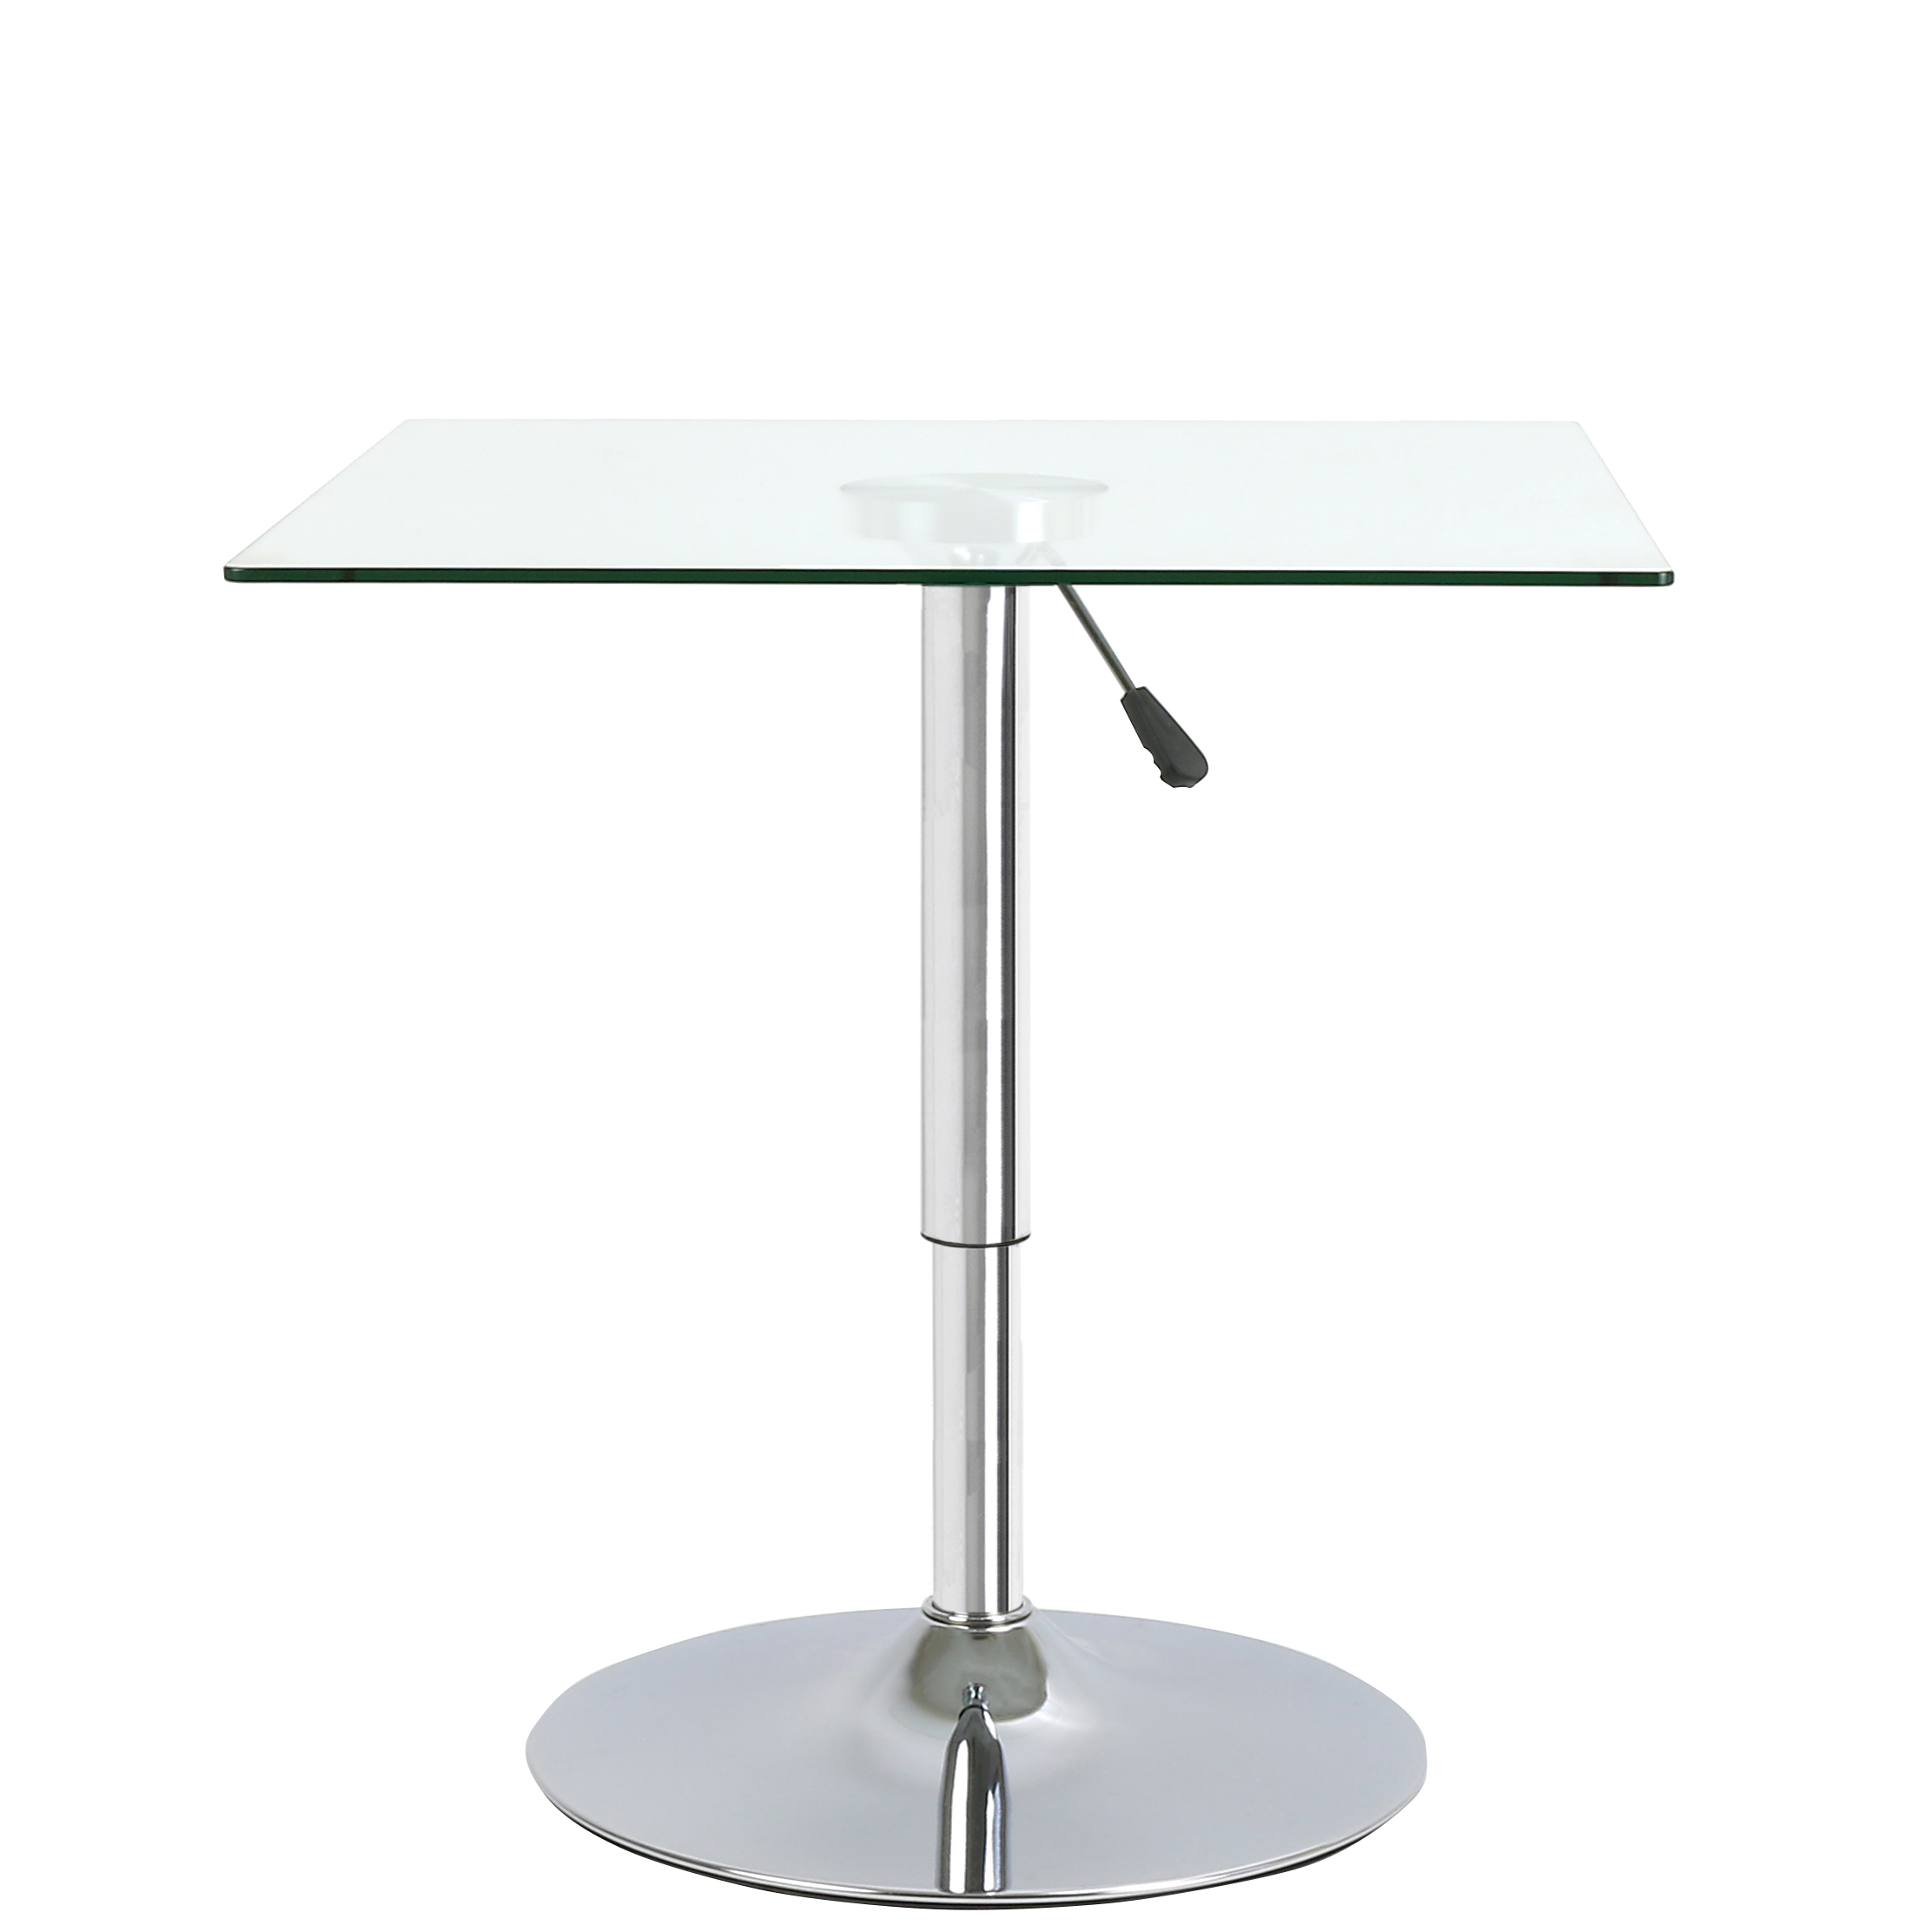 SQUARE ADJUSTABLE CLEAR GLASS BISTRODINING TABLE CAFE  : GLS117G from www.ebay.co.uk size 2224 x 2224 jpeg 592kB